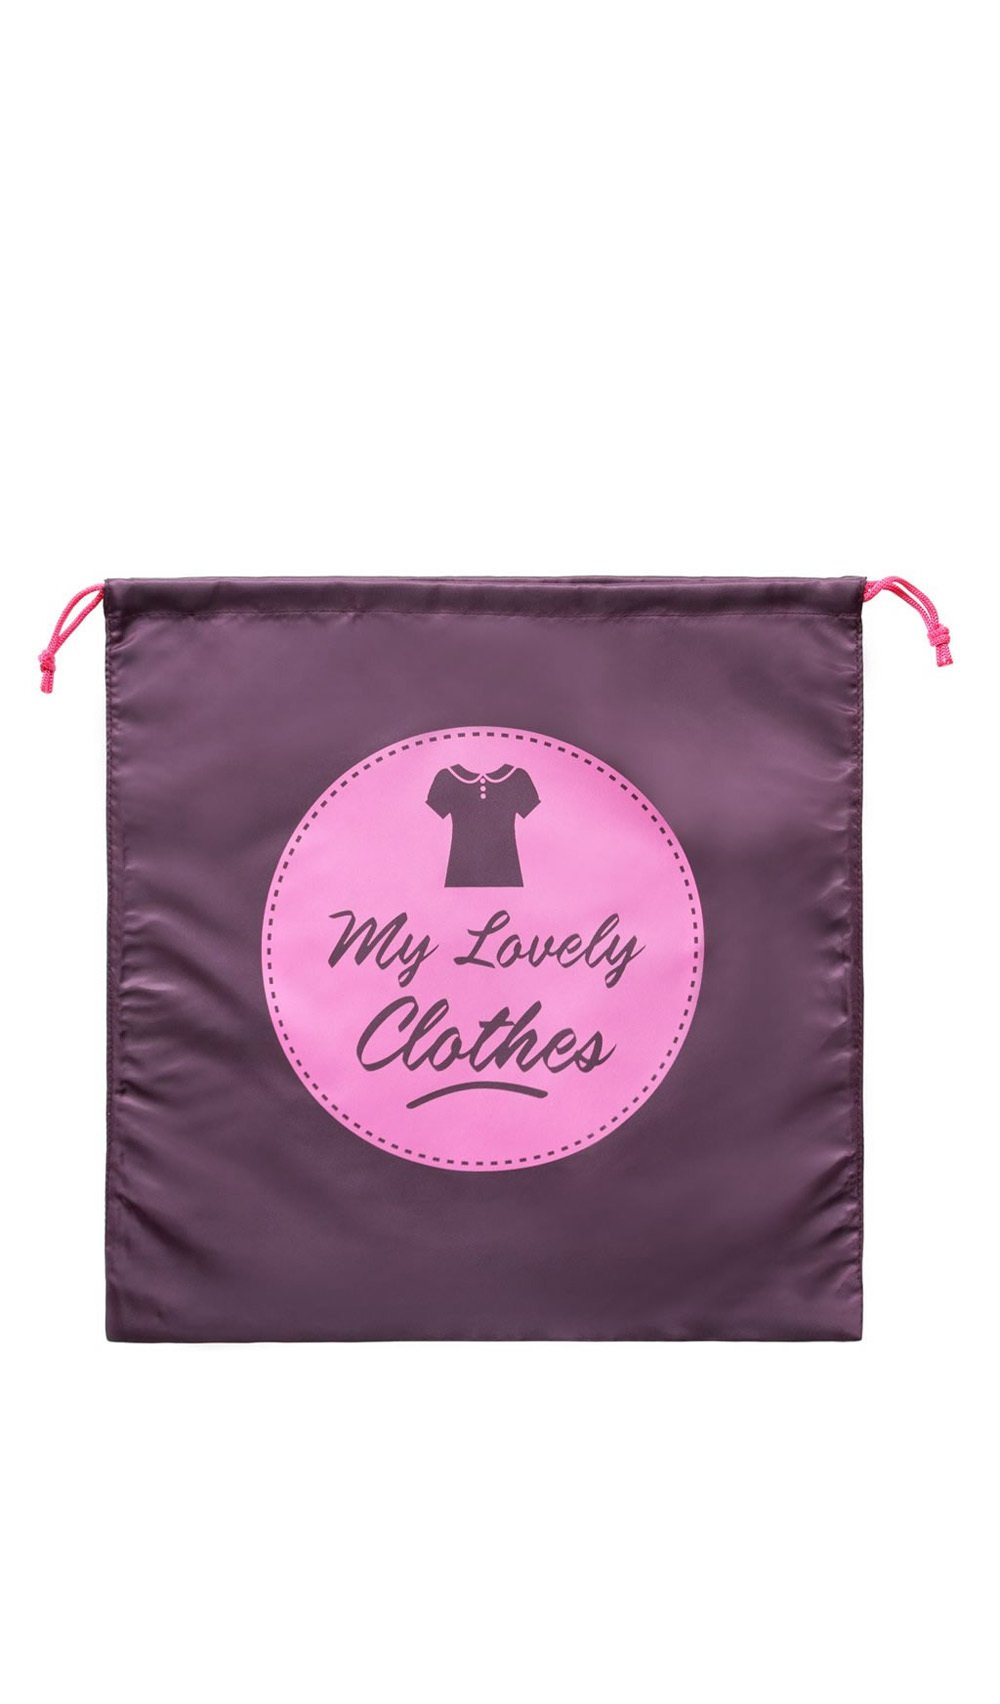 Cathy ds paris Clutch bag MY LOVELY CLOTHES Dark purple Women Spring/Summer Collection